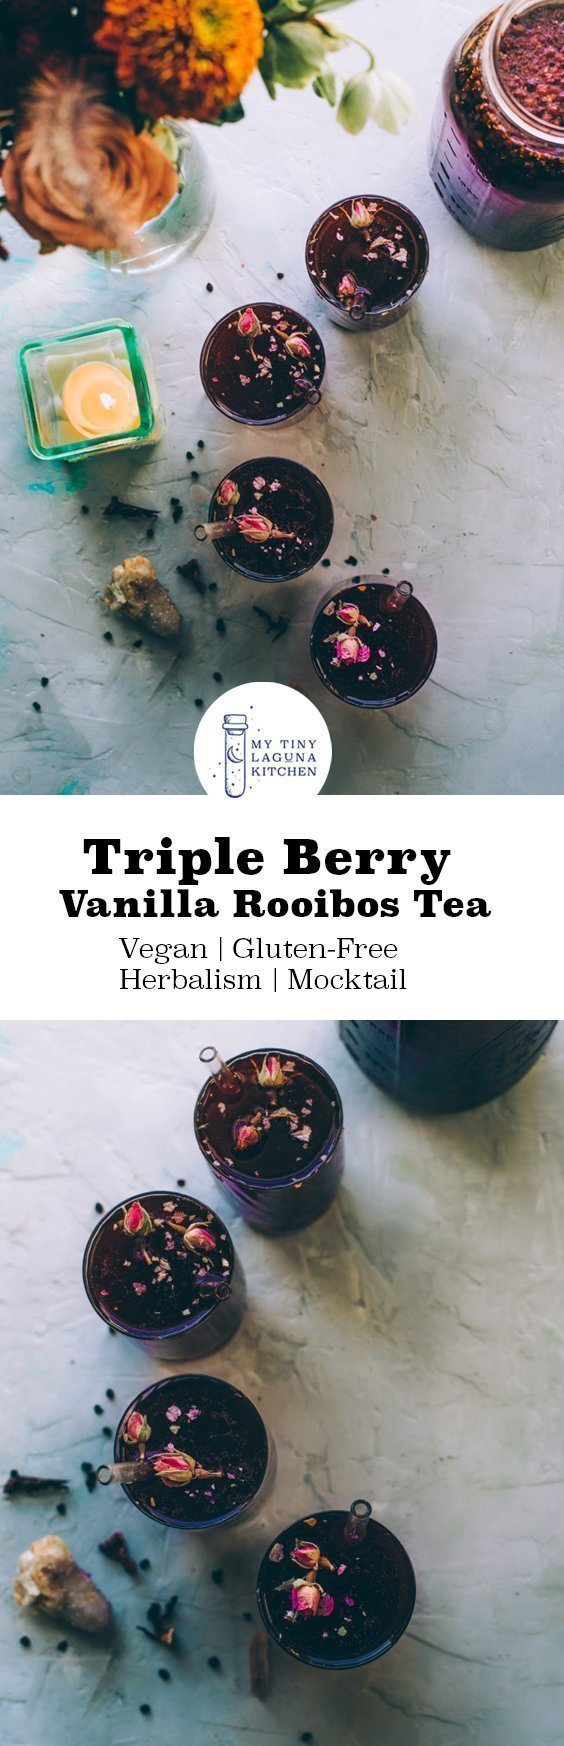 Triple Berry Vanilla Rooibos Filled with antioxidants and delicious taste, this triple berry vanilla rooibos tea is delicious at any time of year, iced or hot! #herbalism #elderberries #tearecipes #tea #immunesystem #herbalismrecipes